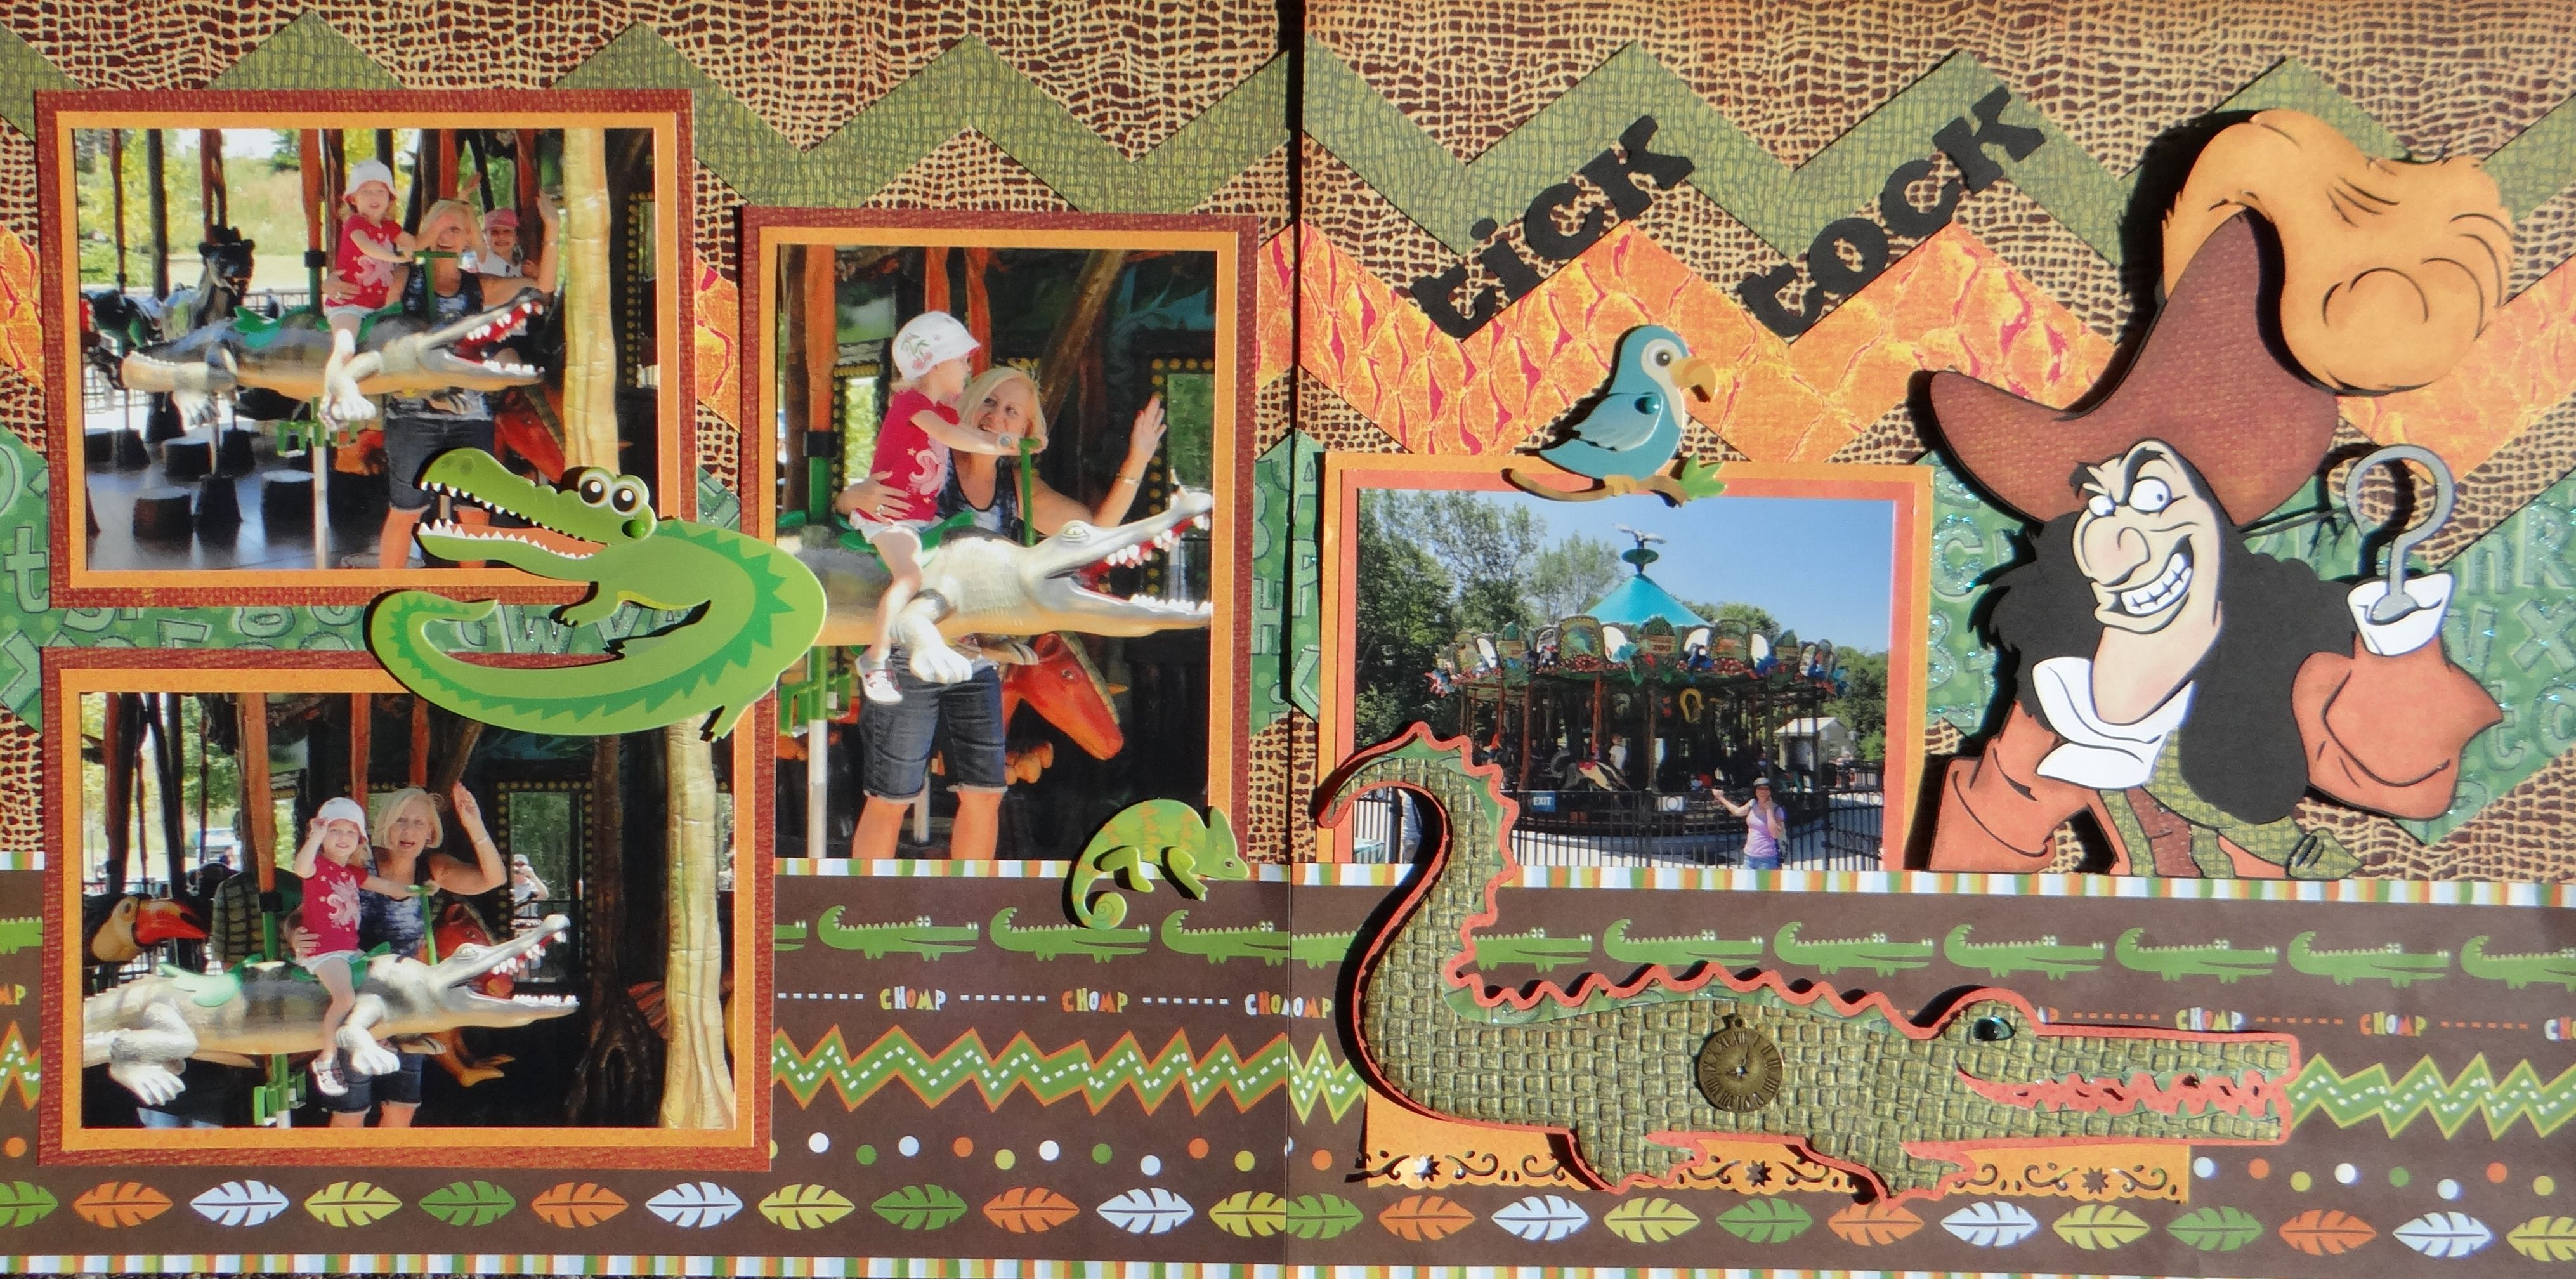 Zoo animal scrapbook ideas - Scrapbook Page At The Zoo 2 Page Animal Layout With Crocodile And Disney S Captain